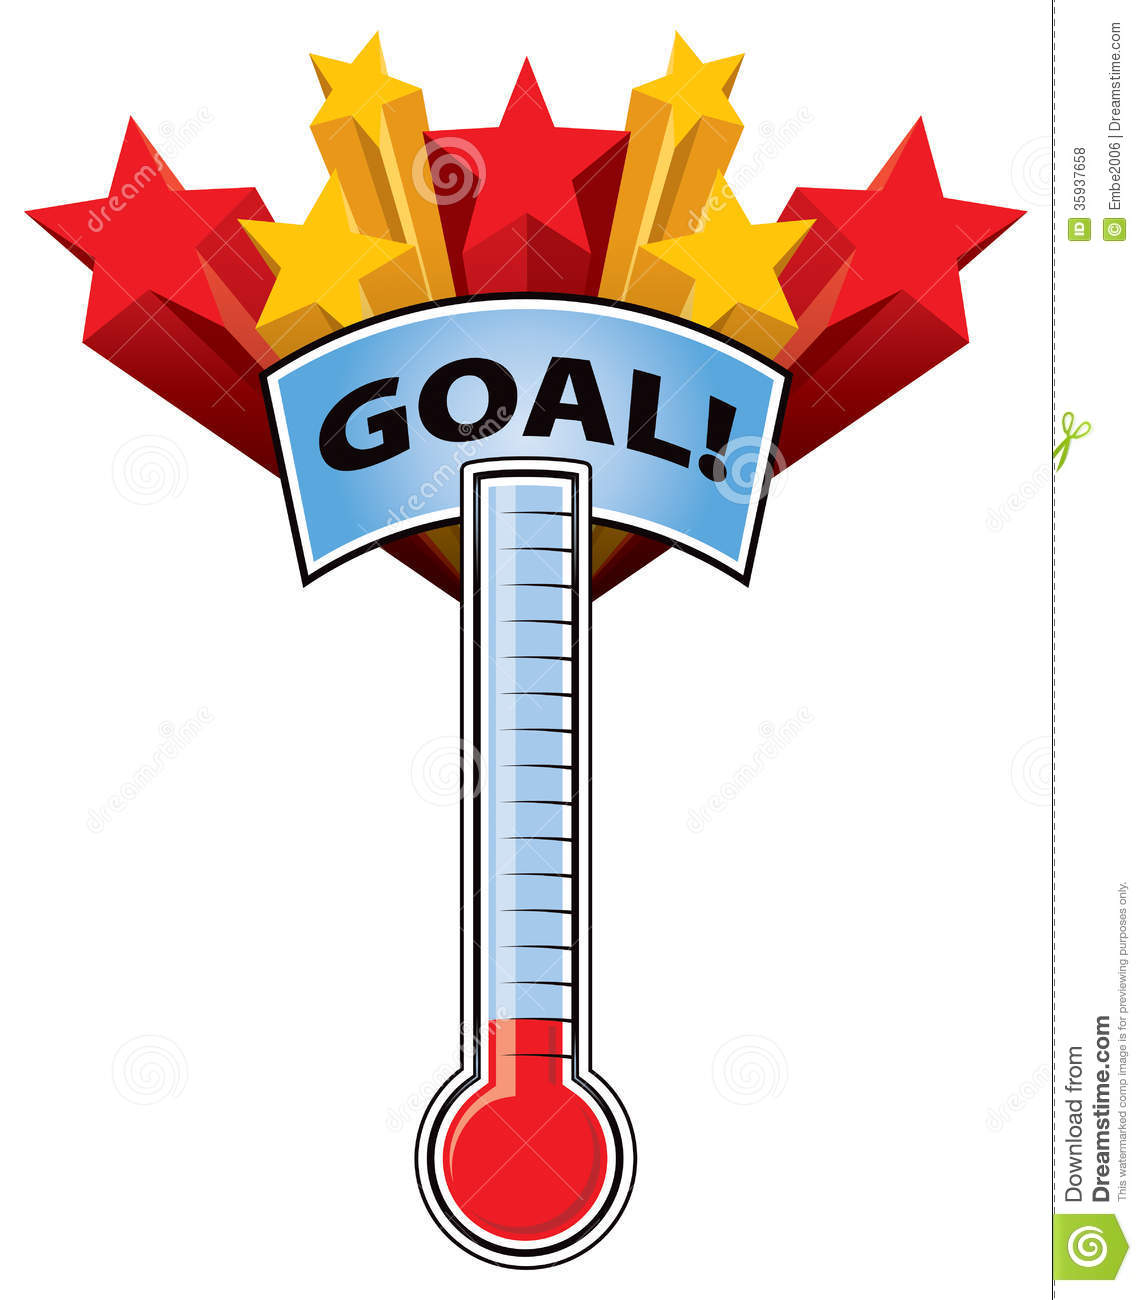 charity thermometer template - fundraising thermometer clip art clipart panda free